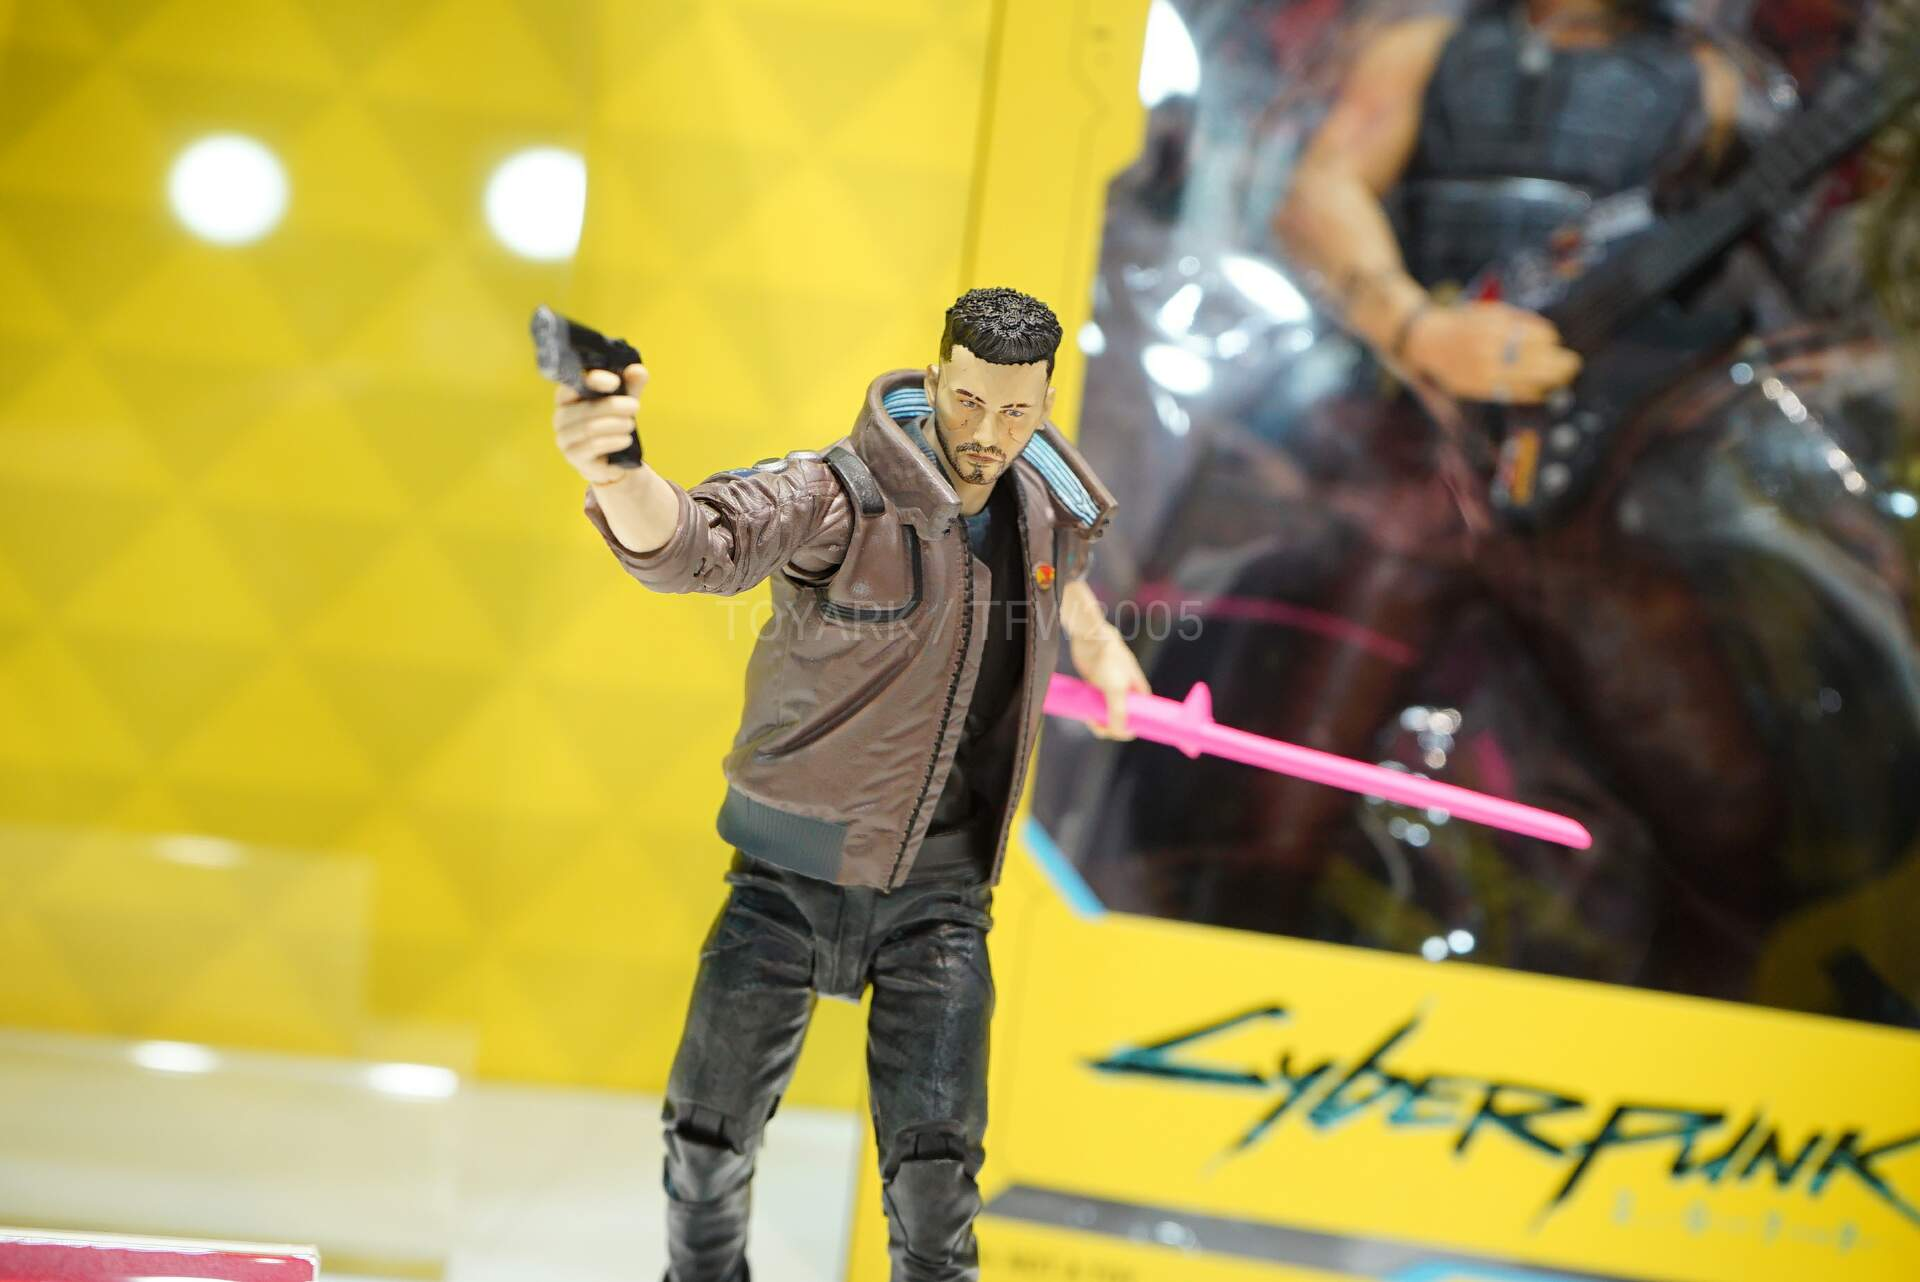 Toy-Fair-2020-McFarlane-Game-011.jpg